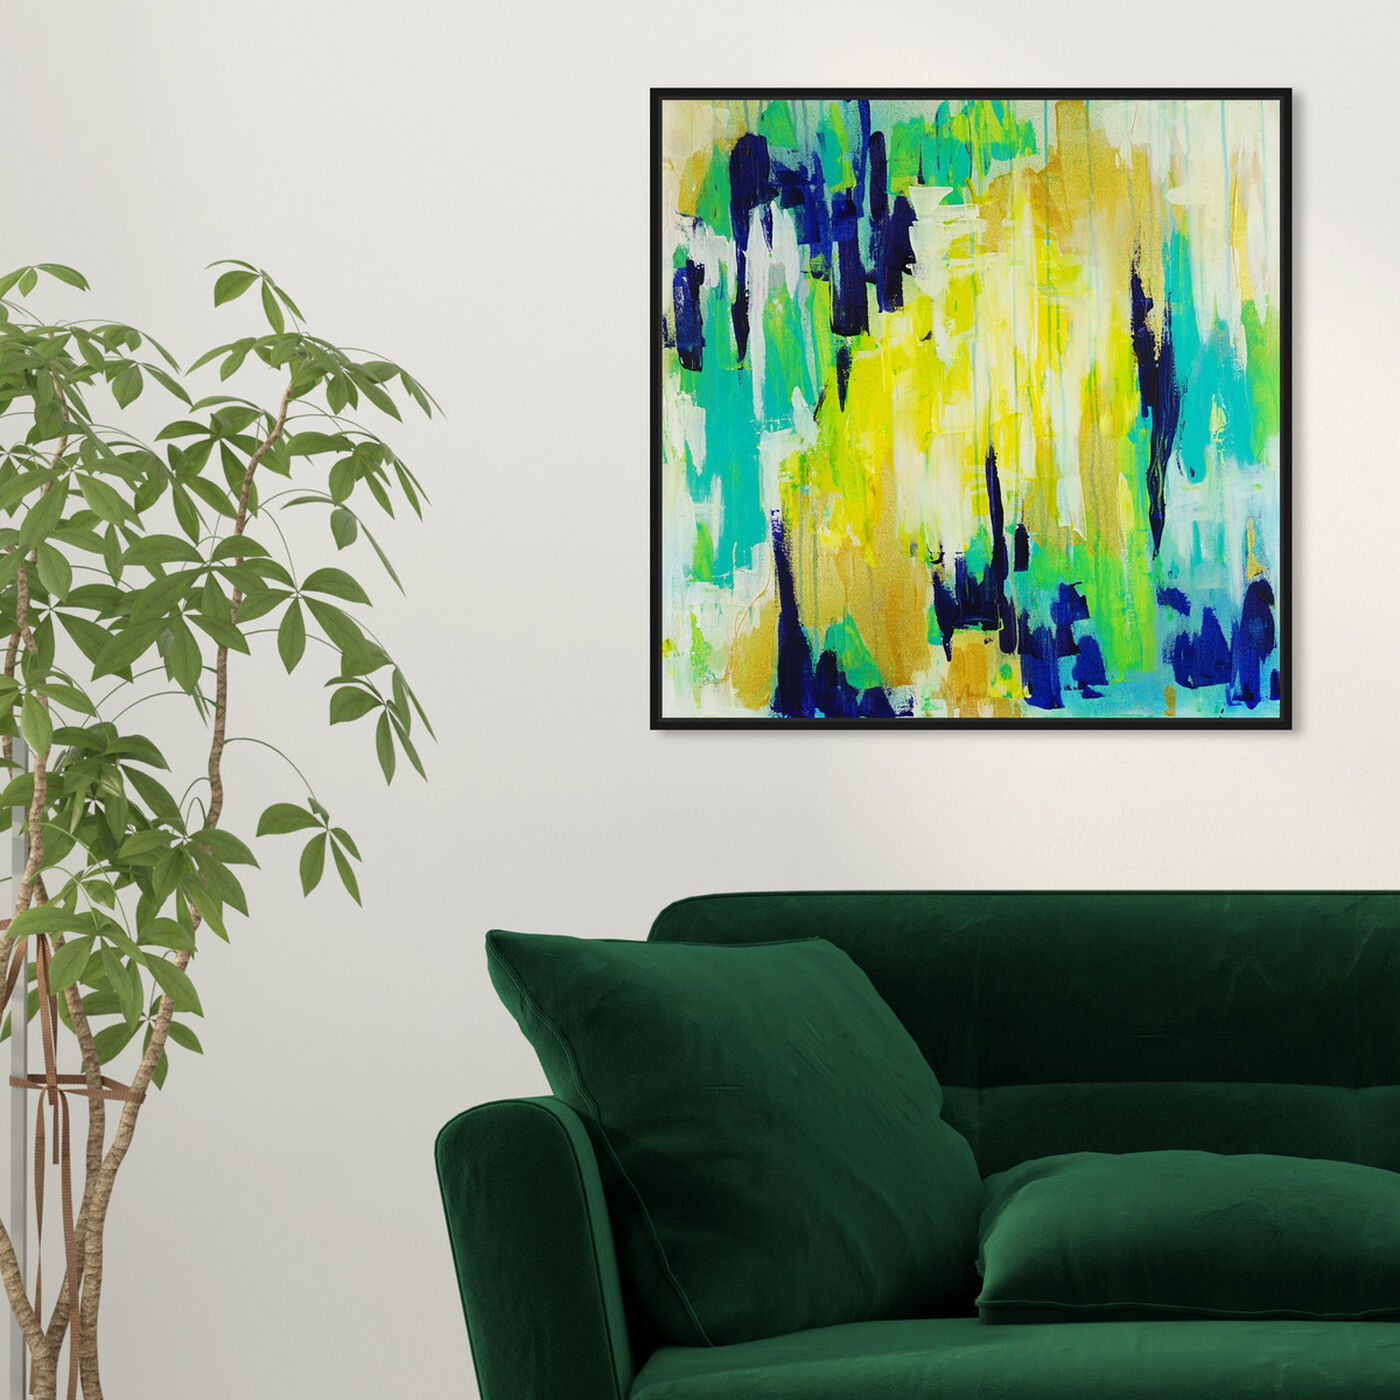 Hanging view of Marissa Anderson-Green Swan Lake featuring abstract and paint art.